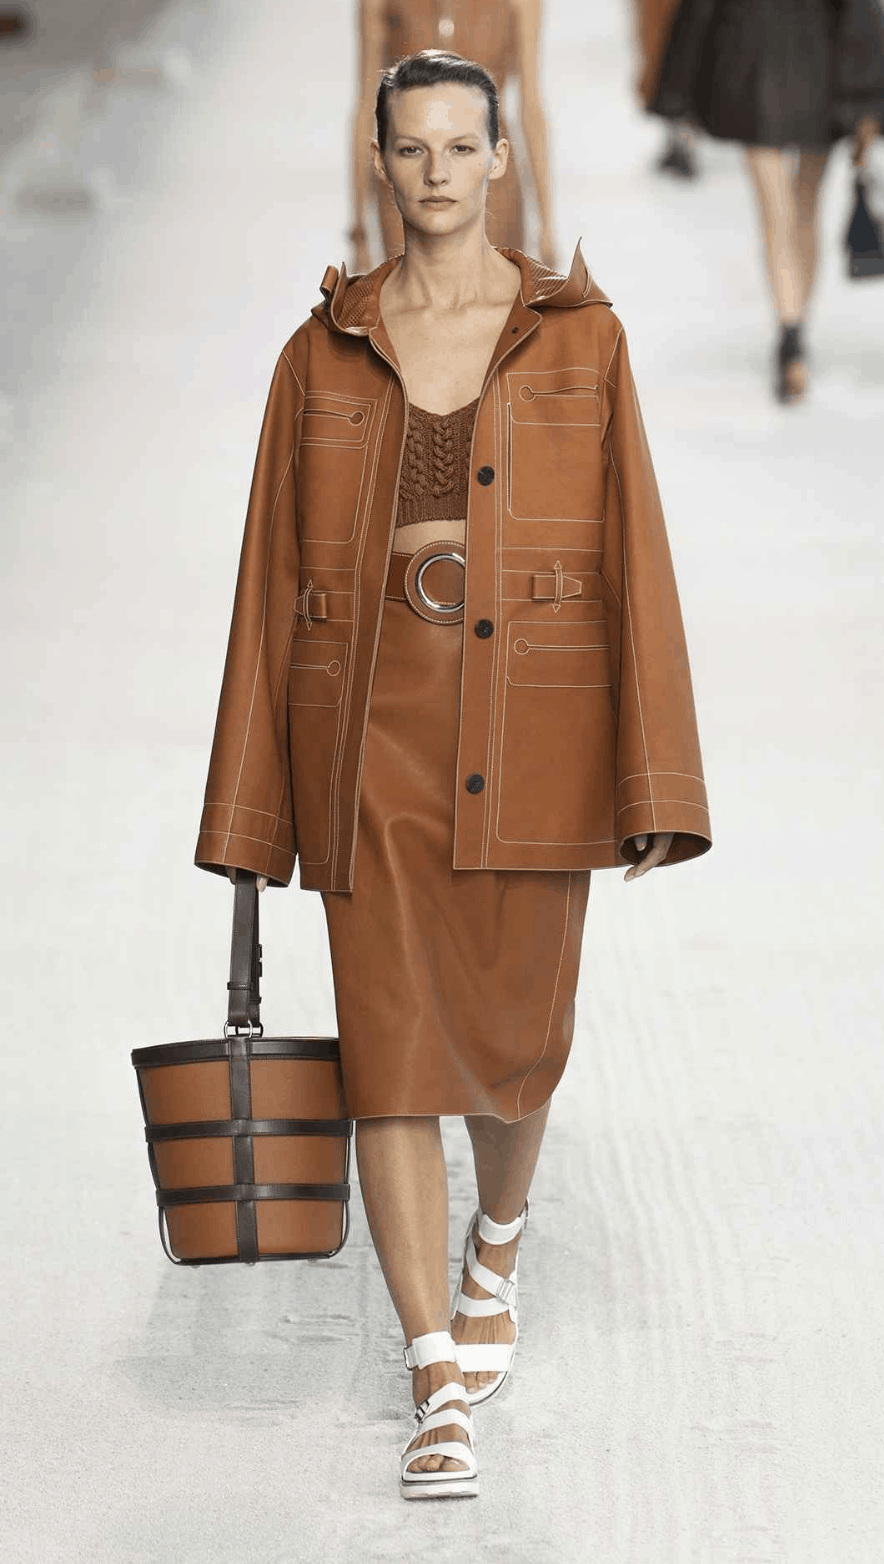 model wearing a skirt-suit and carrying a leather basket bag.